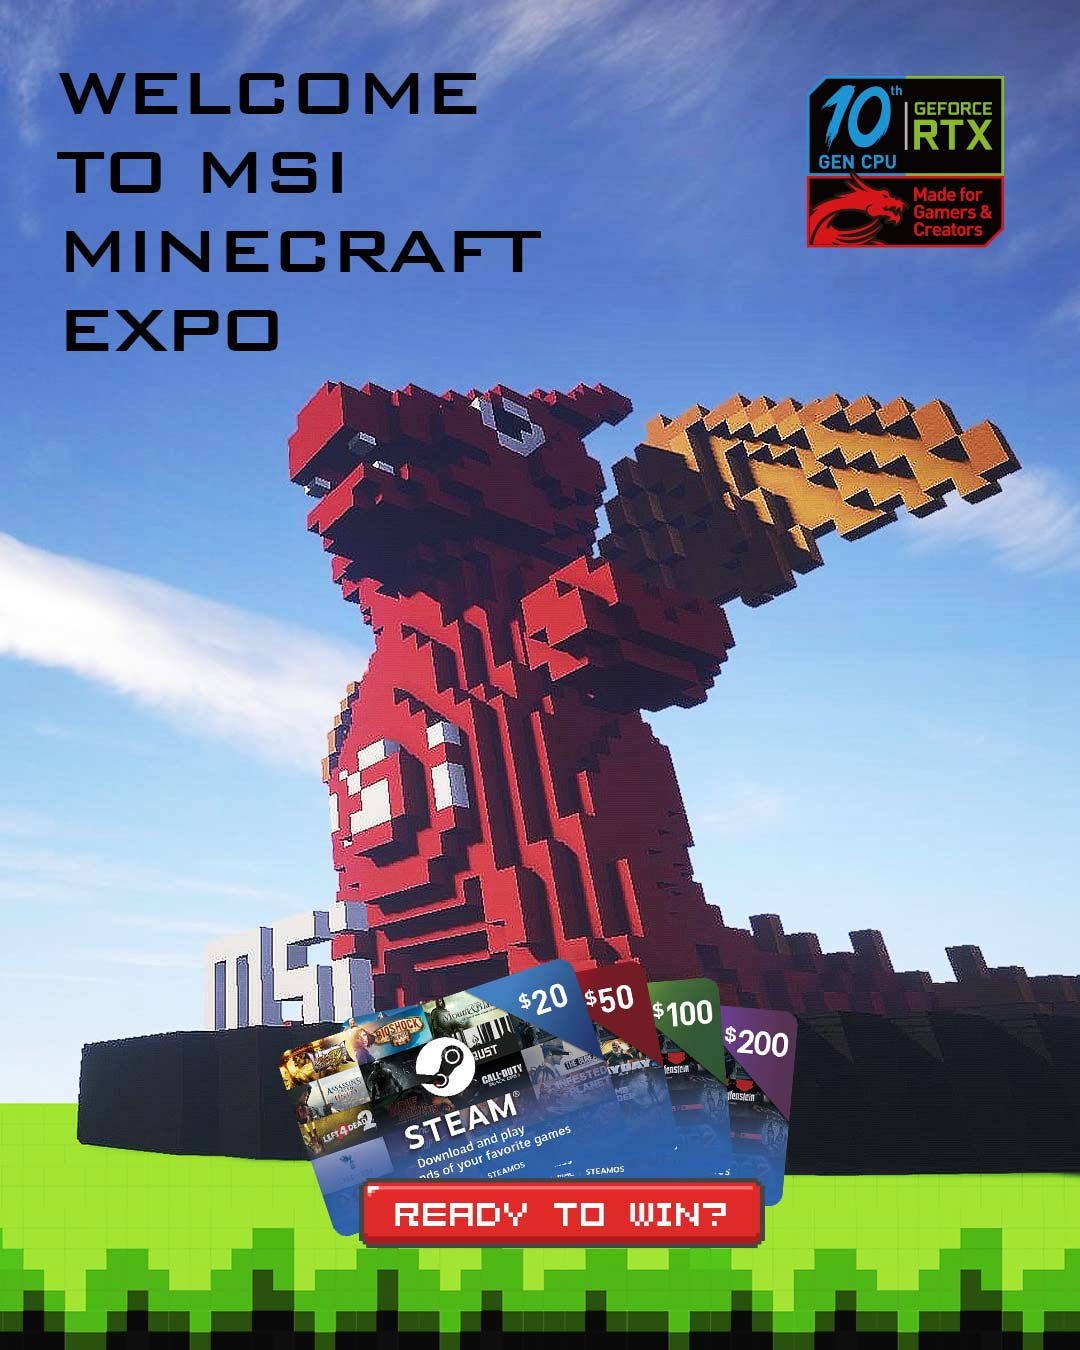 MSI Minecraft Expo